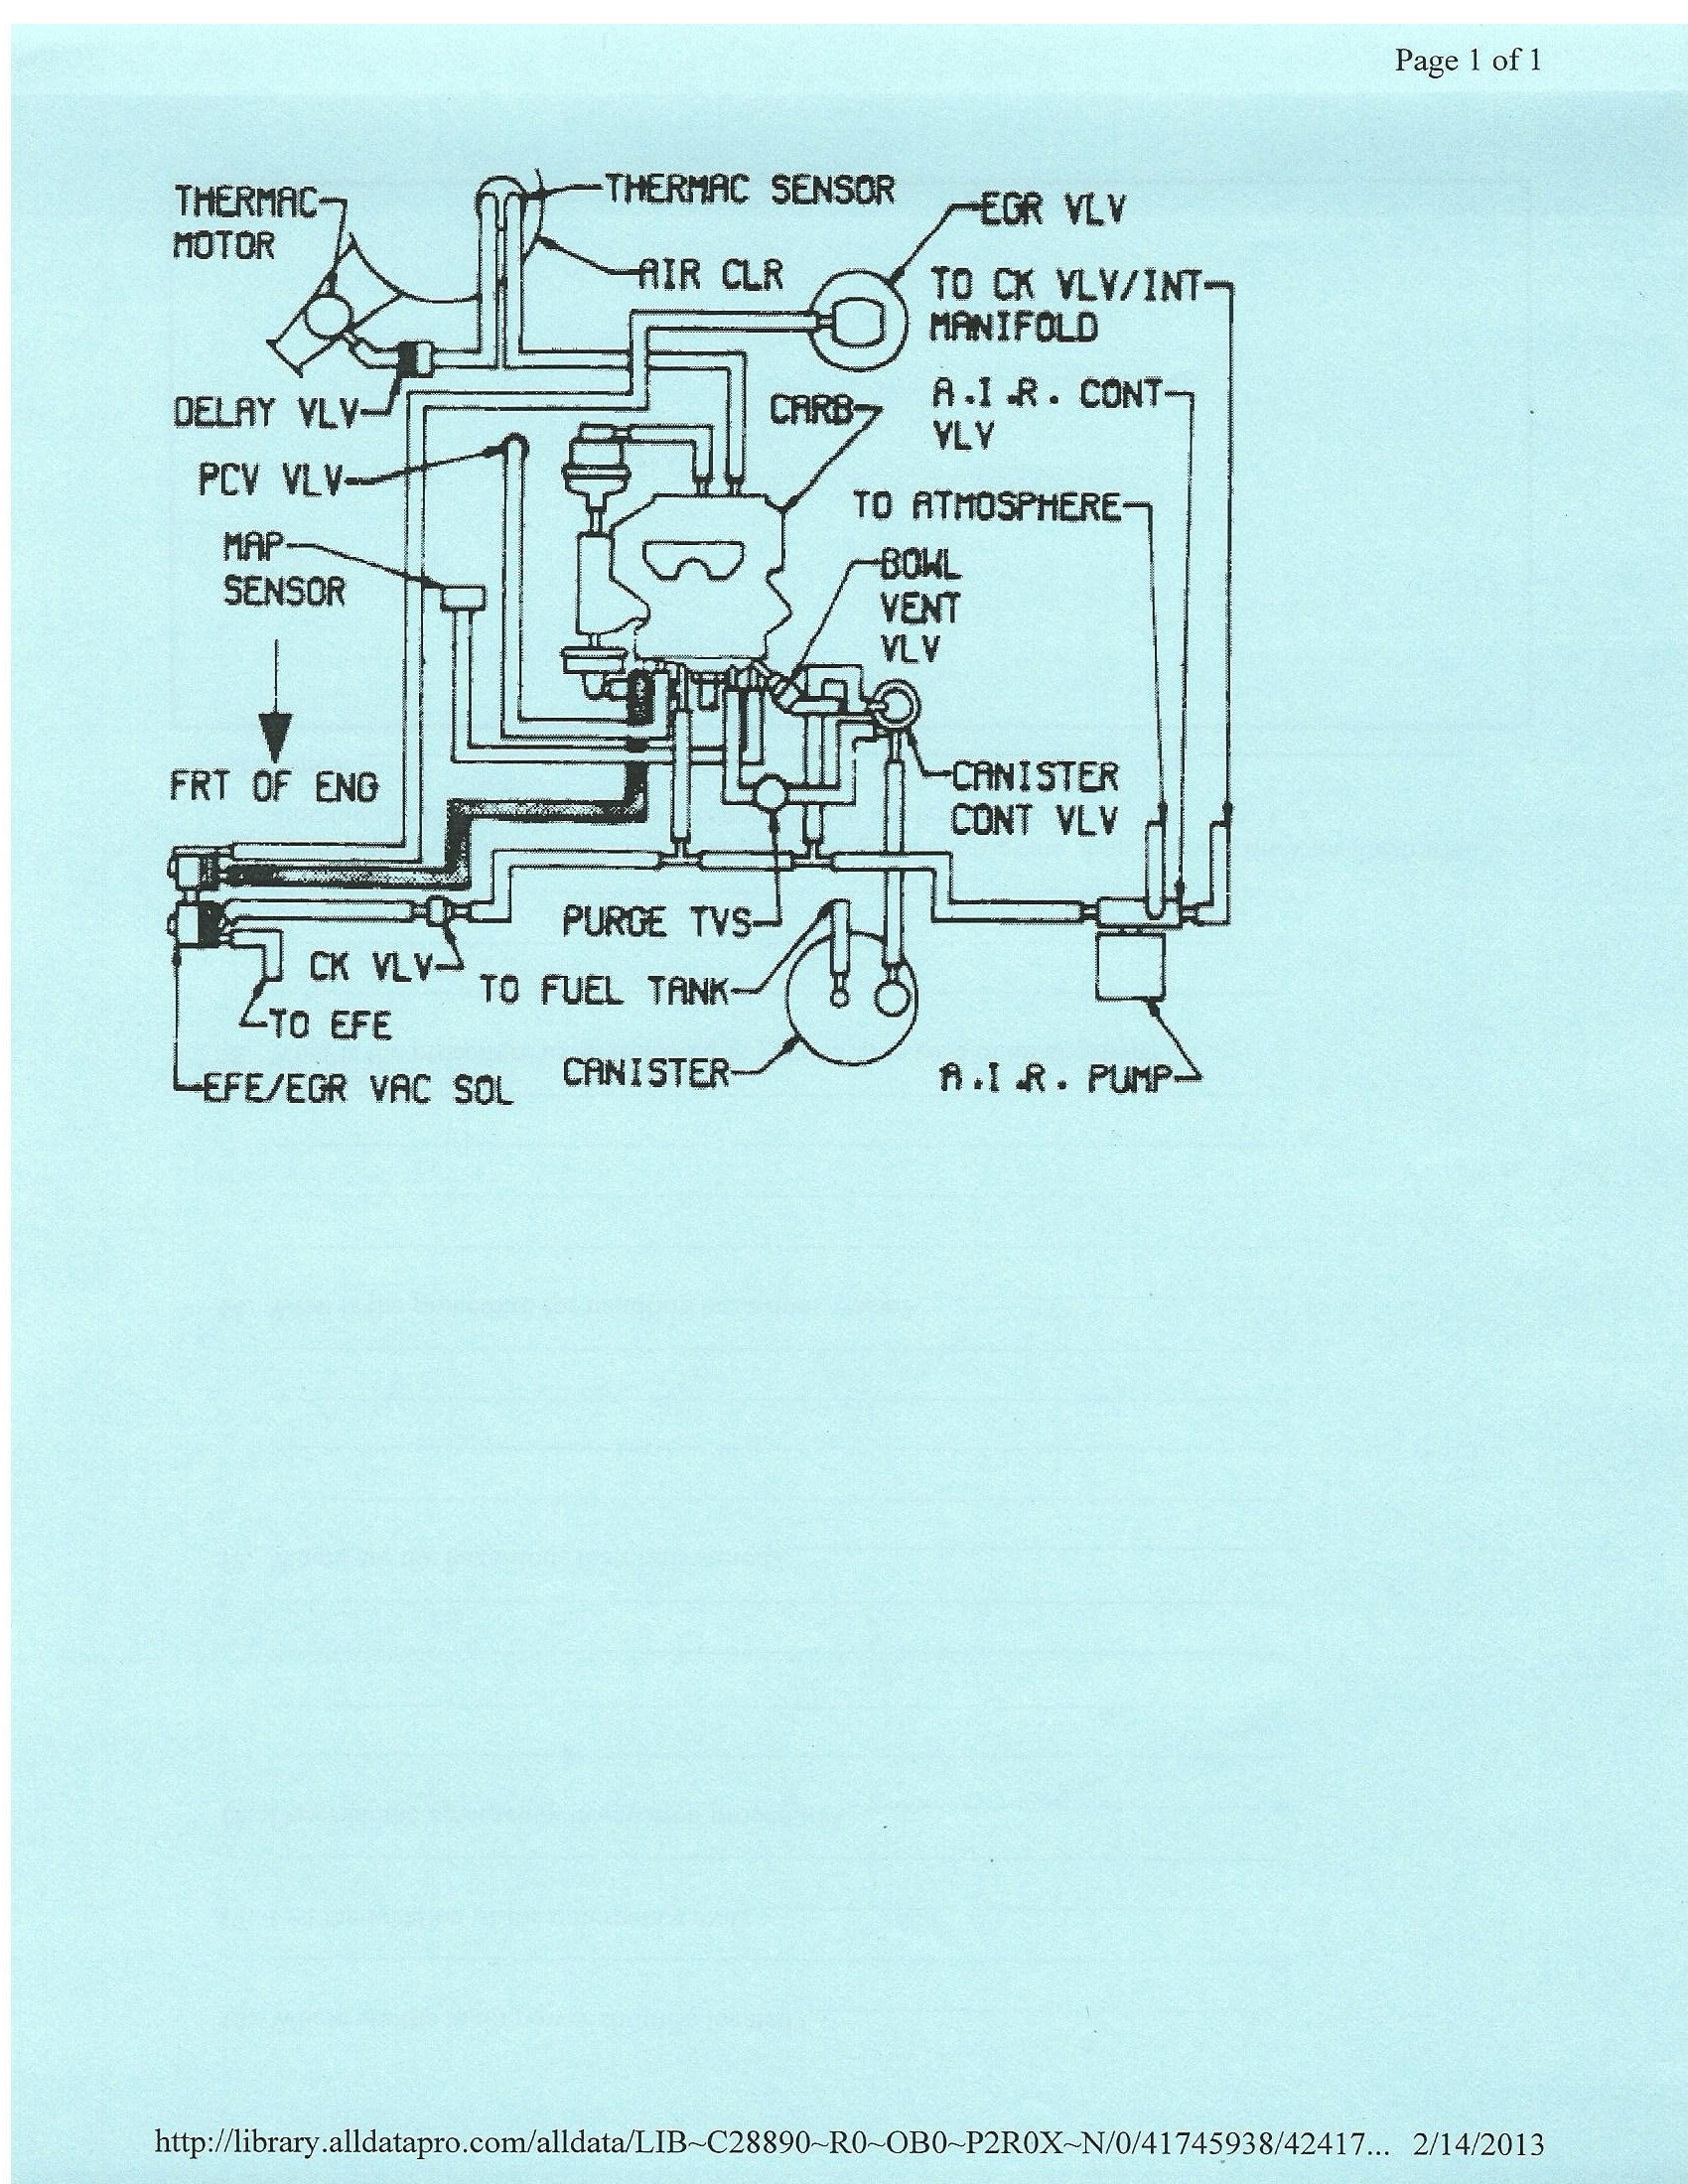 1987 Buick Gn Engine Diagram Wiring Library. 78 Buick Vacuum Diagram Circuit Connection \u2022 1987 Grand National Parts 87. Buick. 1984 Buick Grand National Engine Diagram At Scoala.co